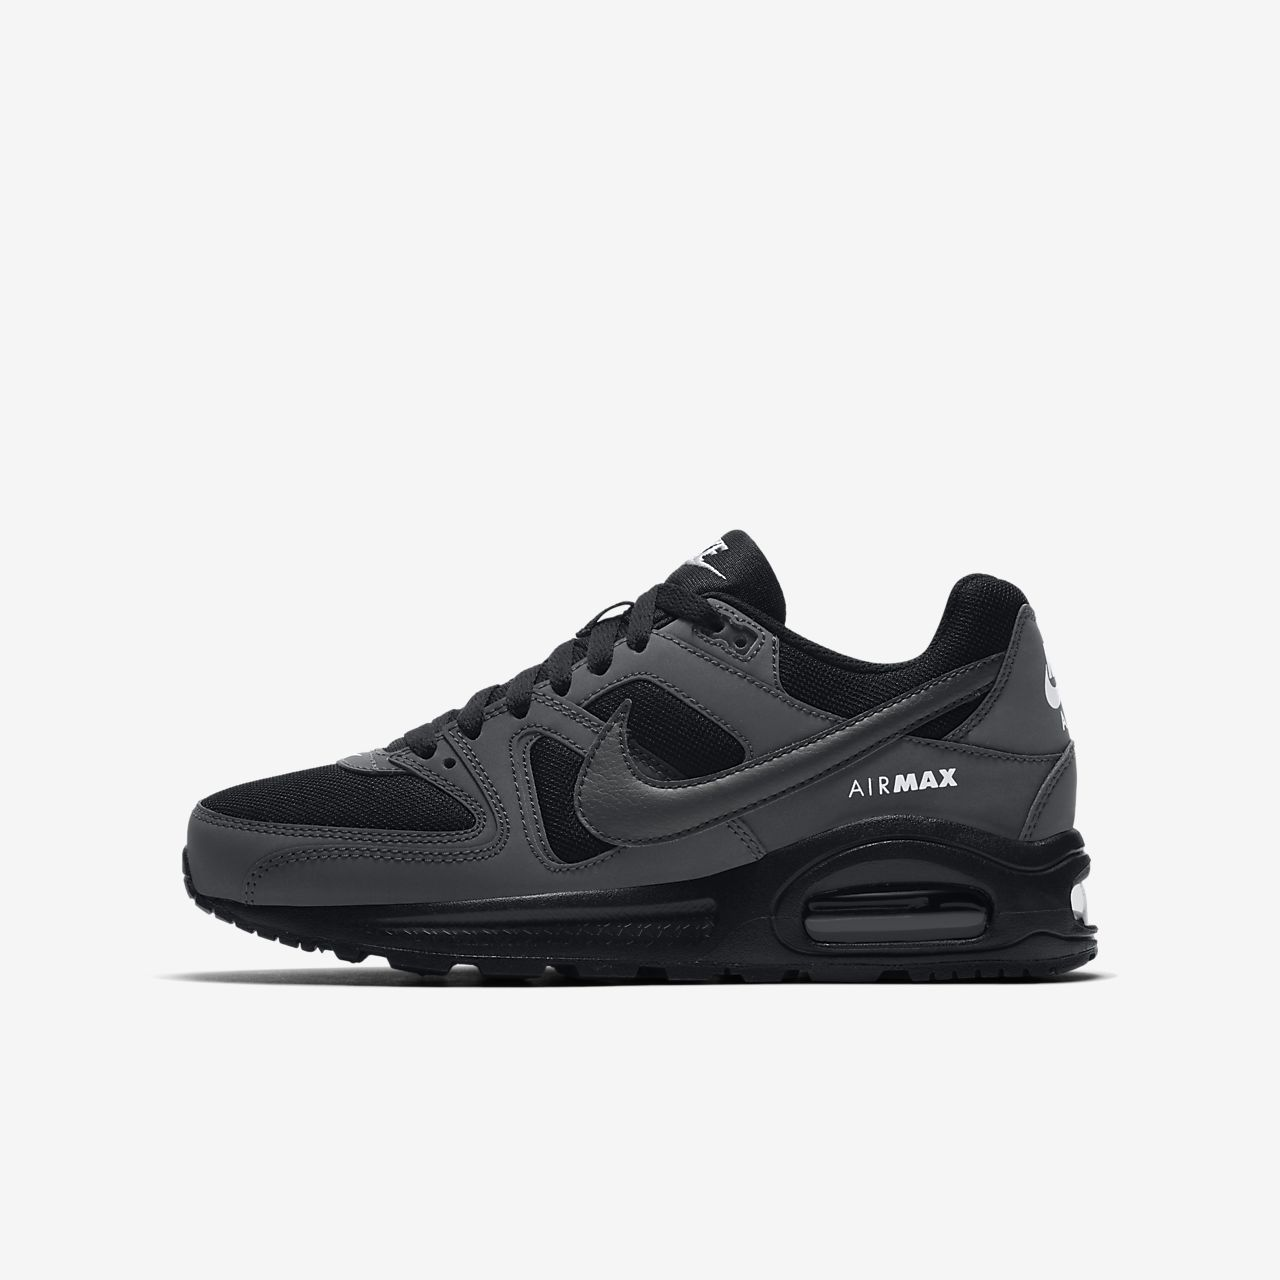 Chaussures et baskets Nike Air max command leather shoes